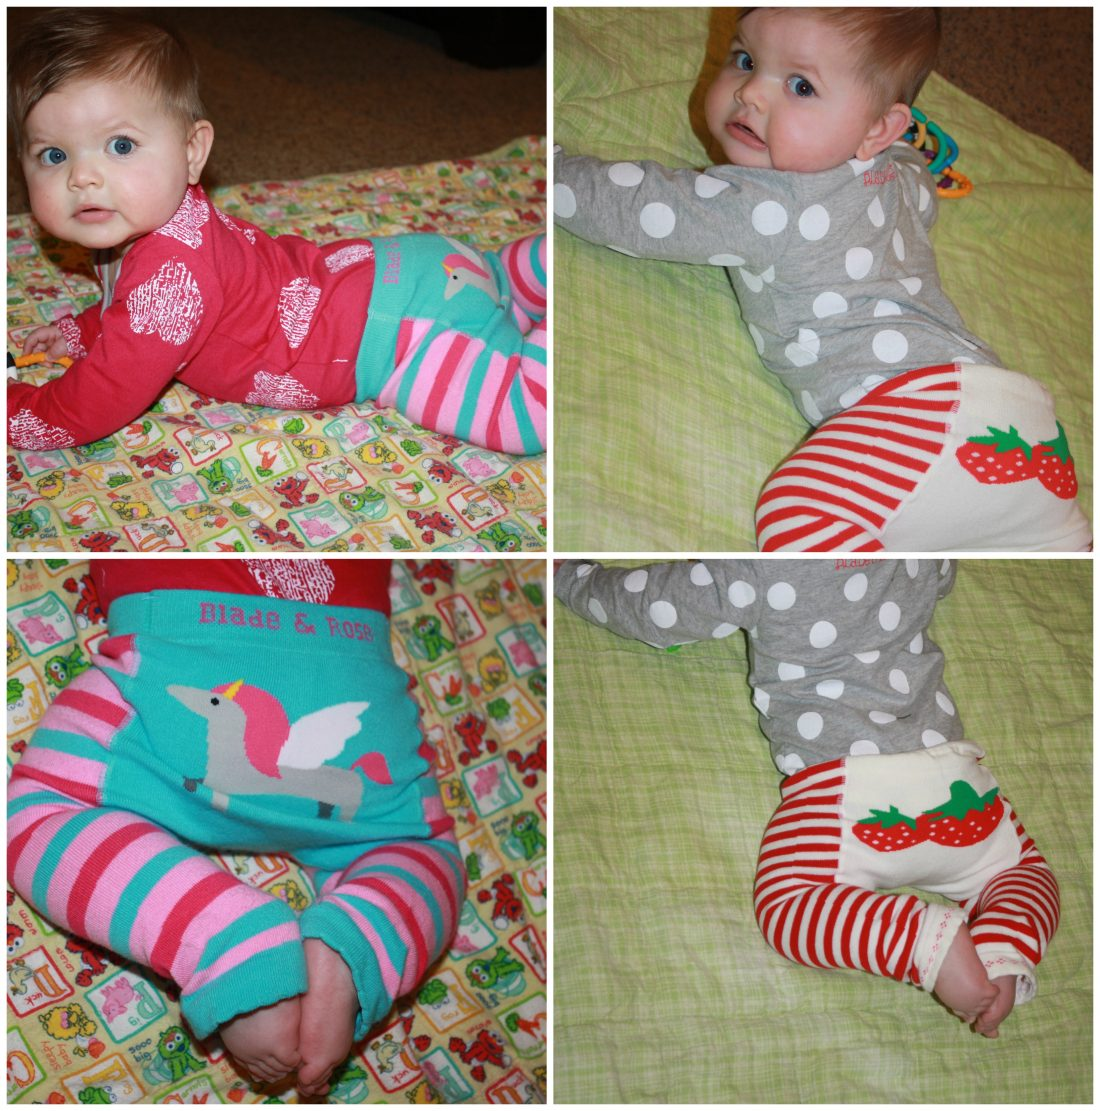 Blade rose cute tights and clothing for little ones Kids in mind